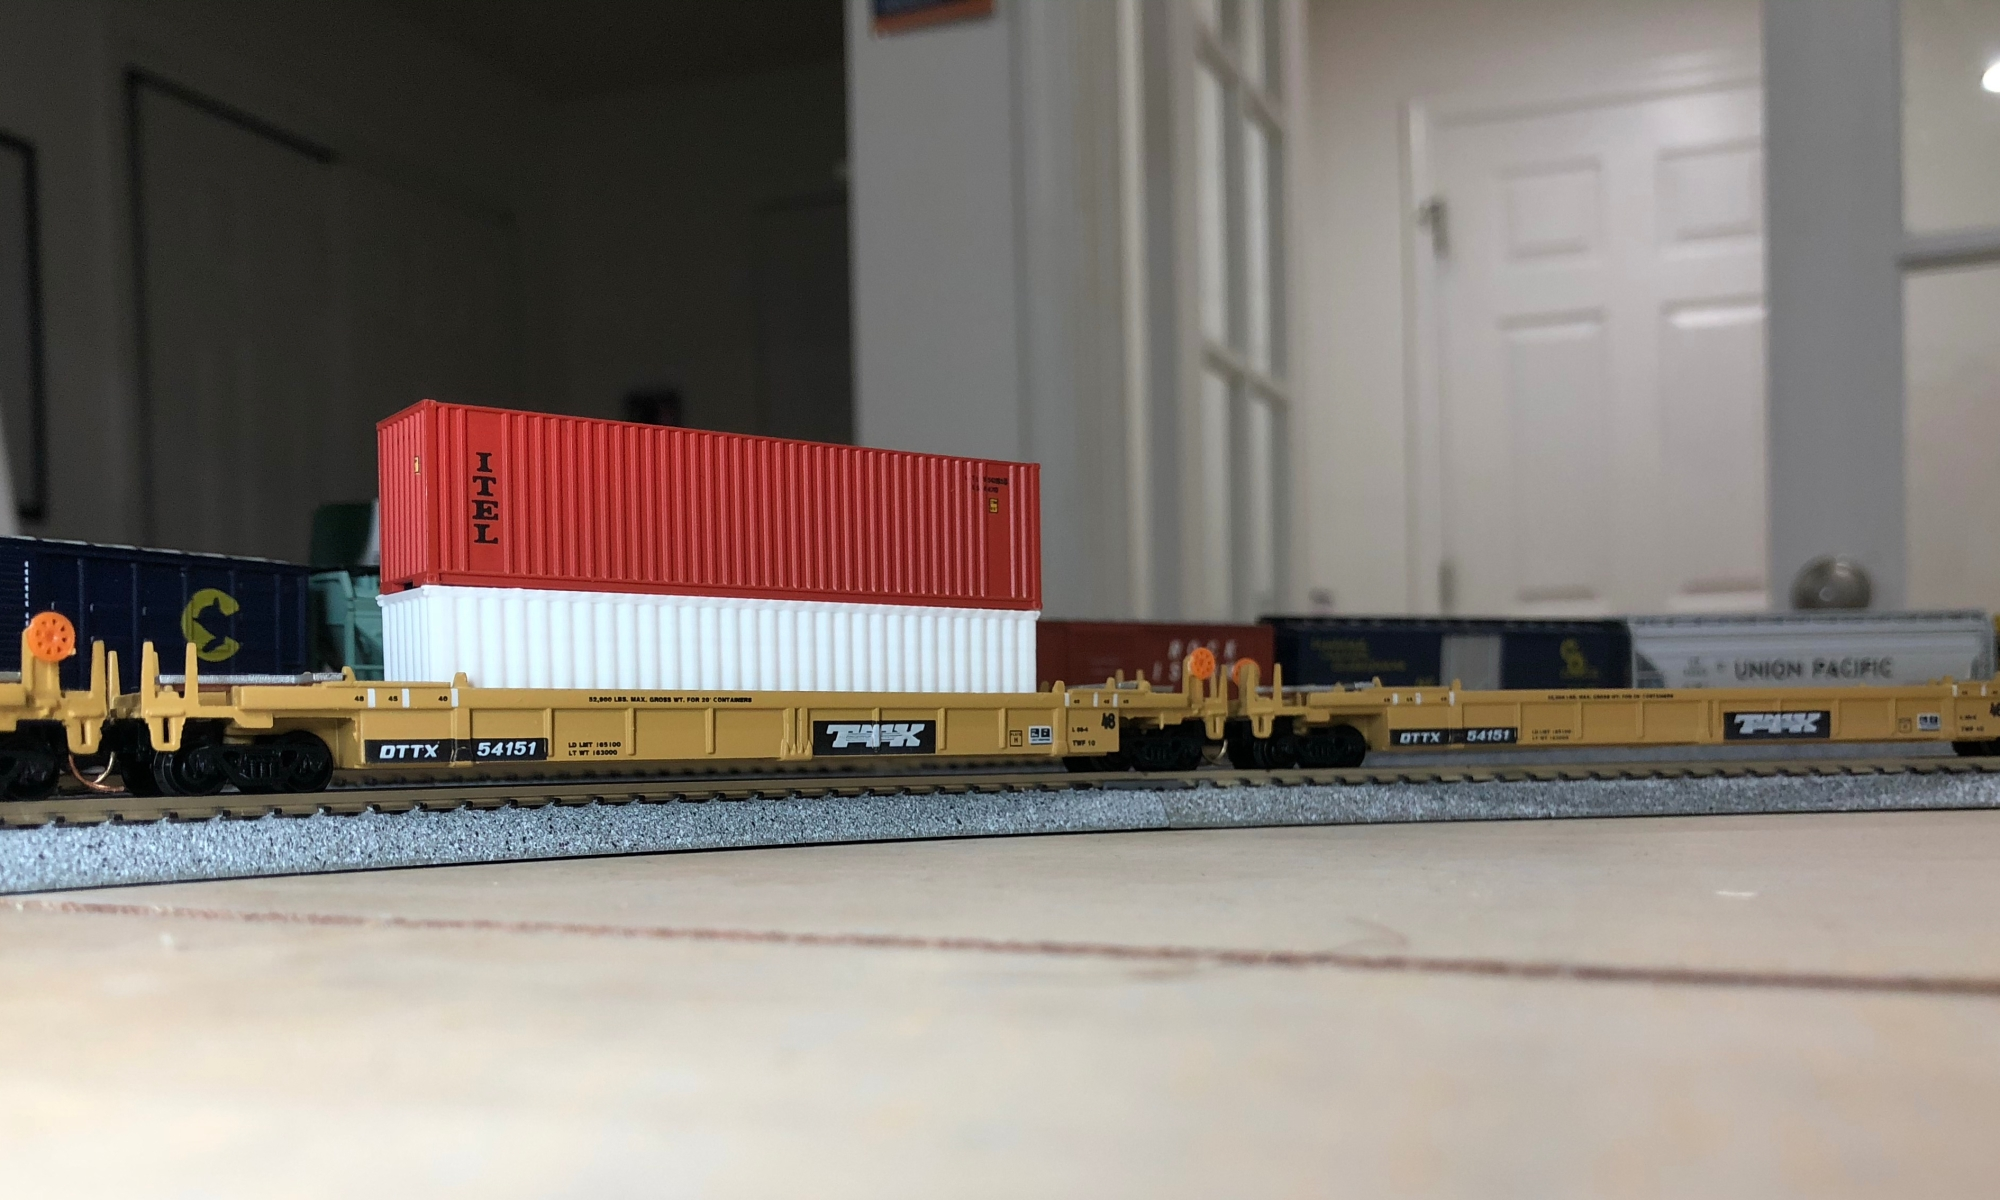 3D Printed container (White) on N Scale railcar